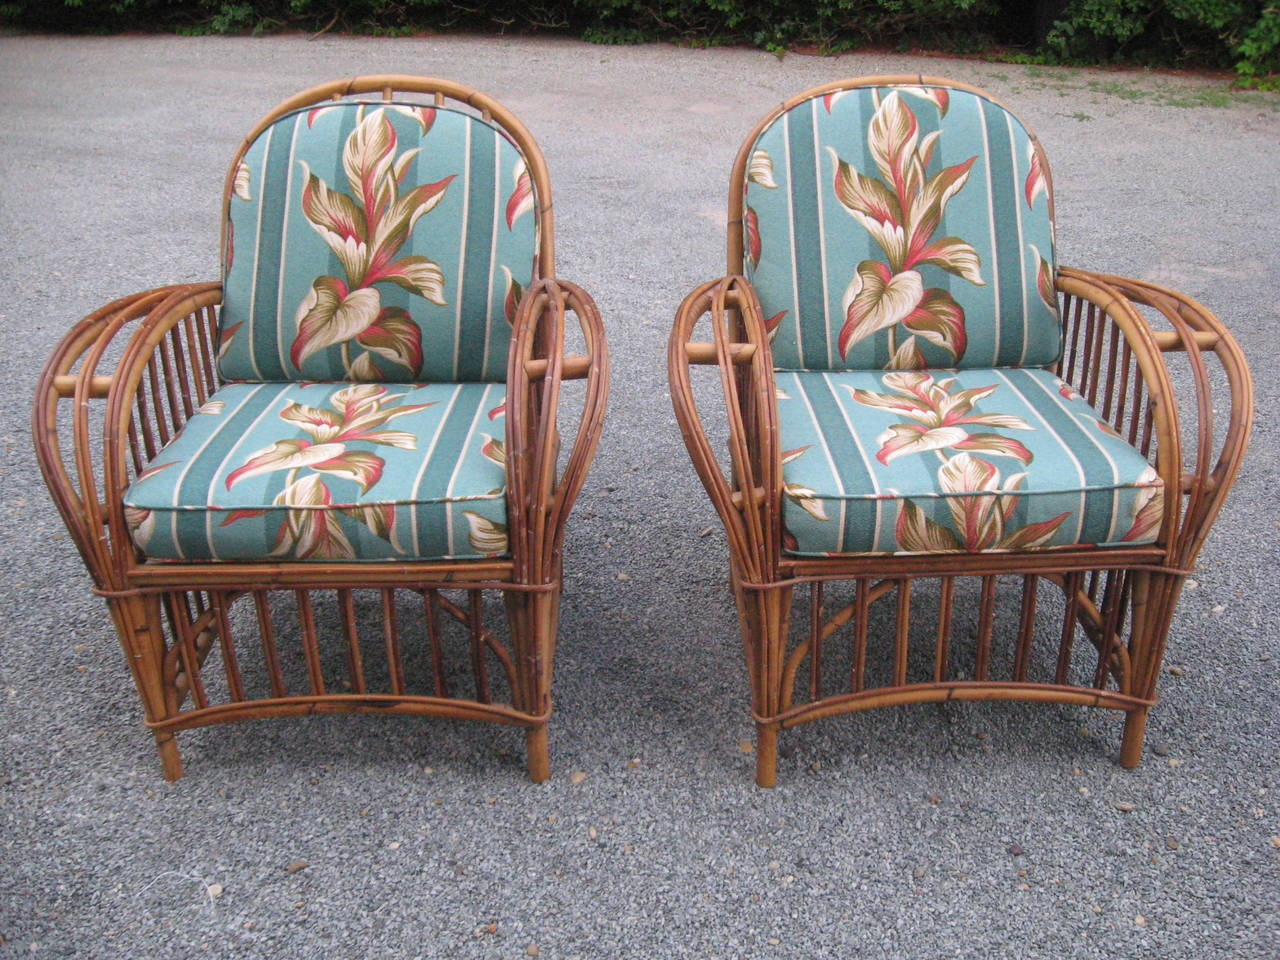 Vintage pair of lounge chairs with custom handmade cushions.